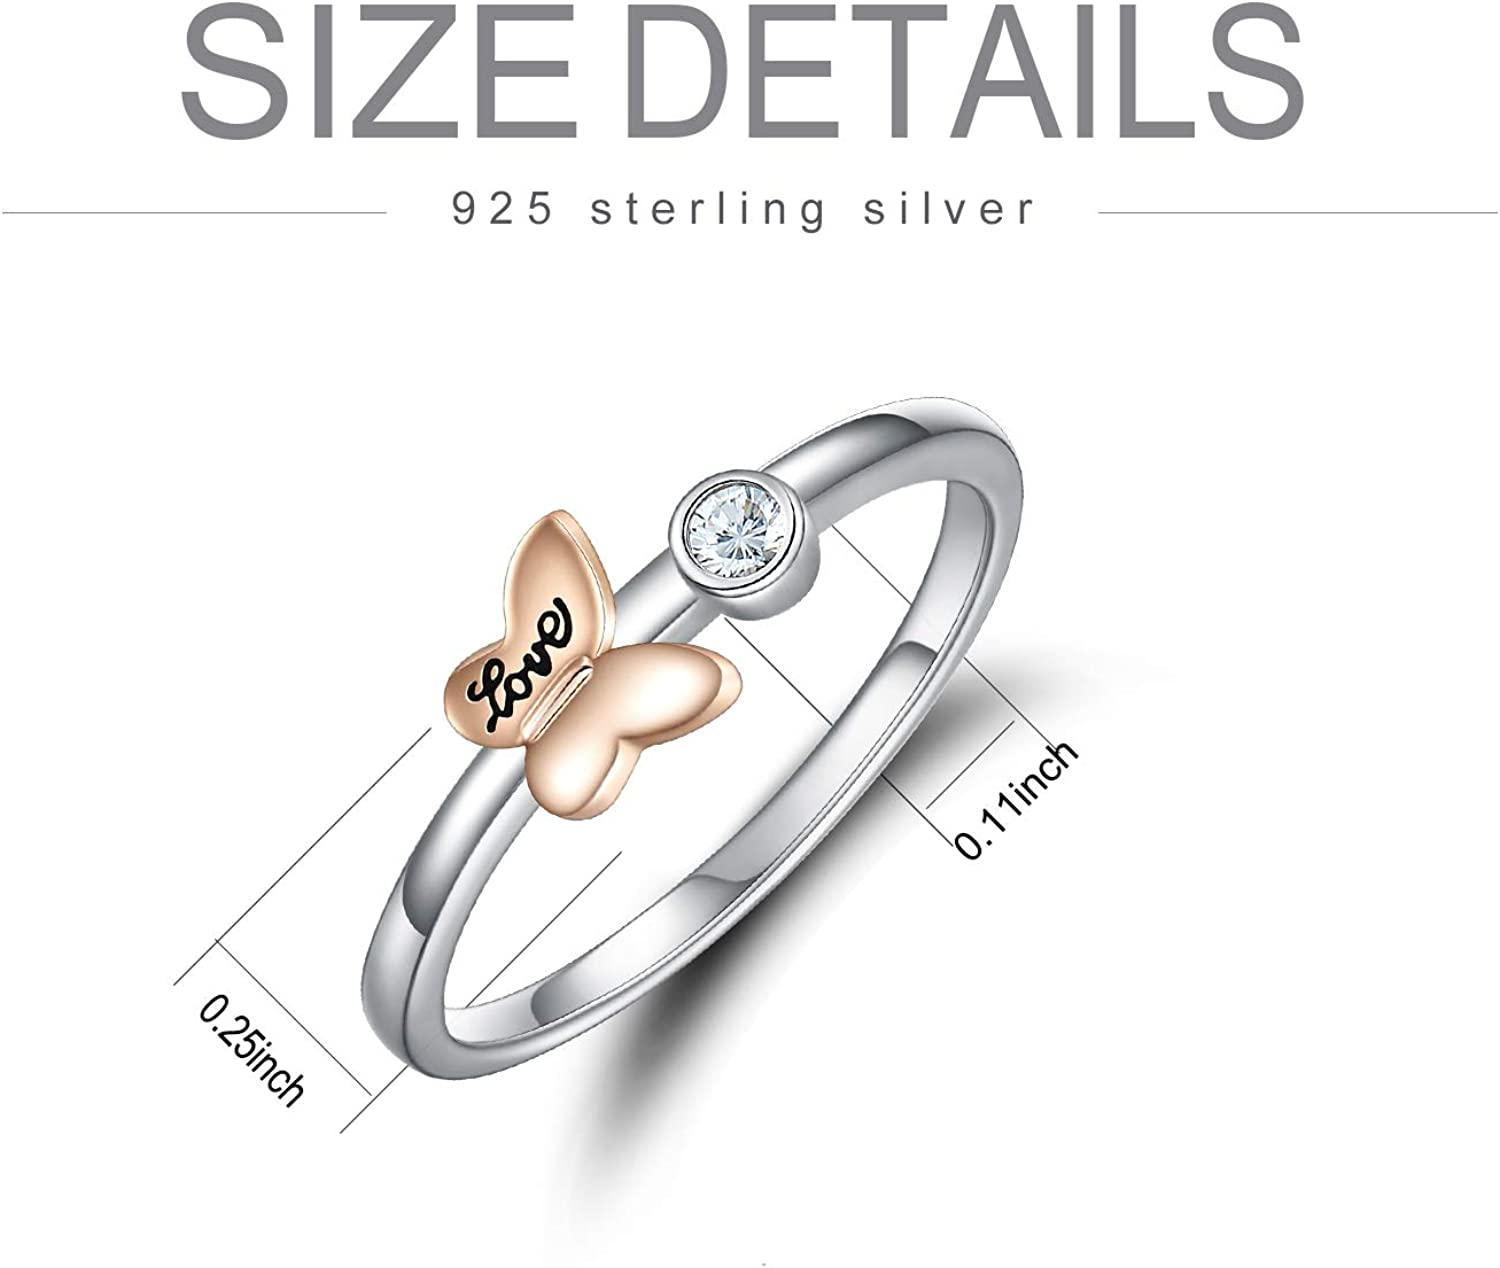 ROMANTICWORK Butterfly Rings for Women Sterling Silver Thin Band Love Promise CZ Ring Butterfly Jewelry Anniversary Wedding Birthday Gift for Her Teen Girls Lover